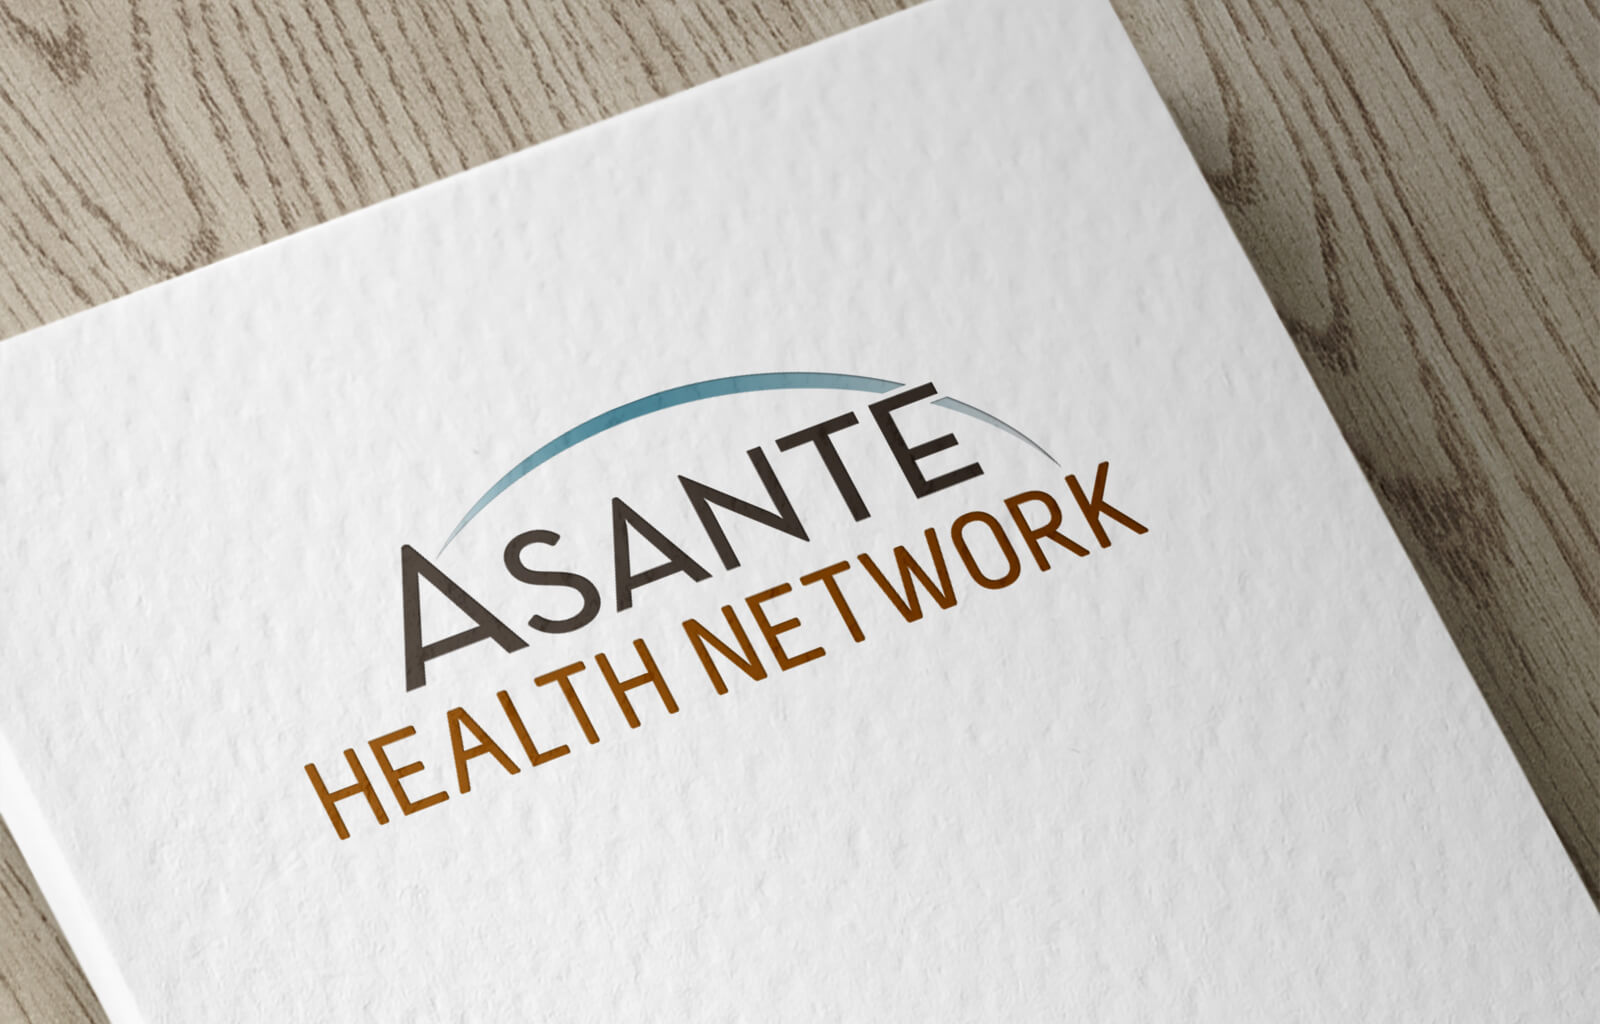 Asante Health Network Logo